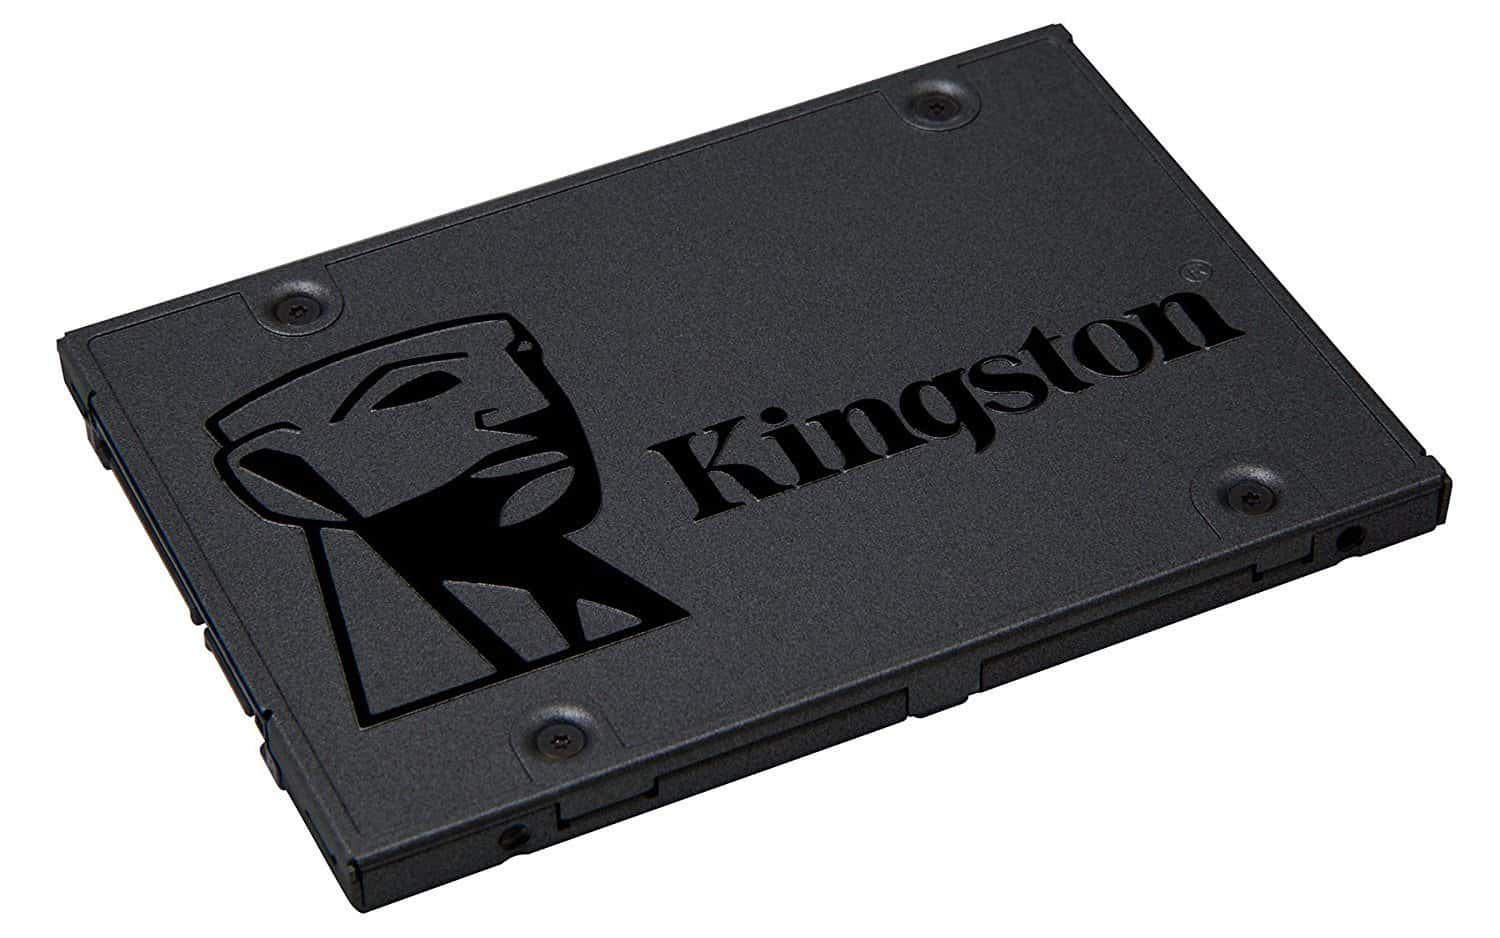 Kingston SSDNow A400 480GB Internal Solid State Drive